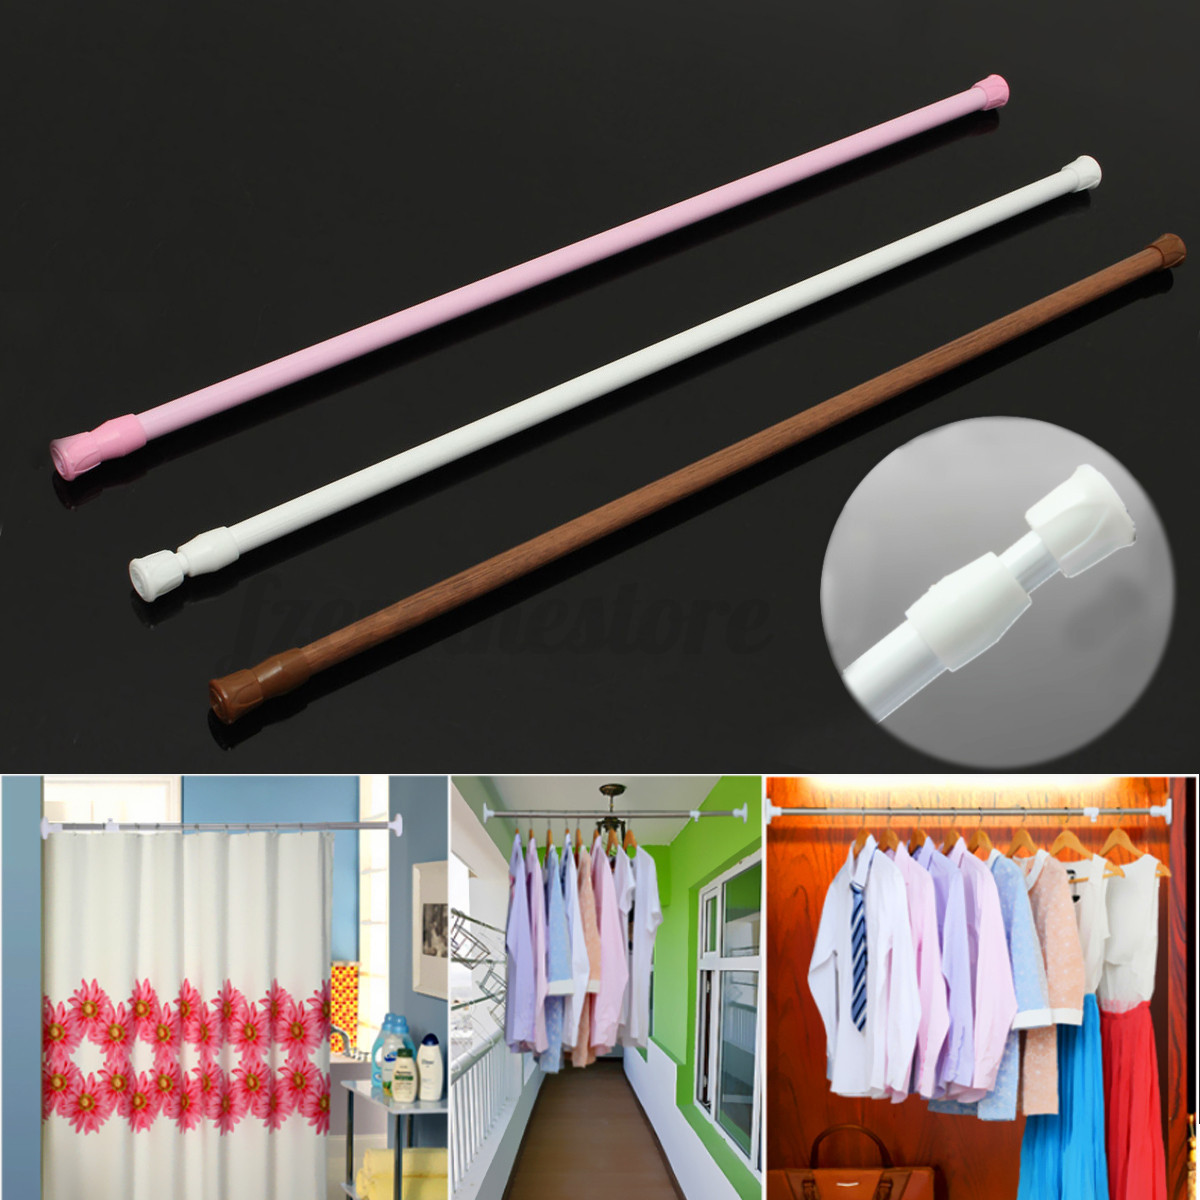 Spring loaded extendable net voile tension hanging shower curtain rail - Image Is Loading 60 110cm Spring Loaded Telescopic Net Voile Tension